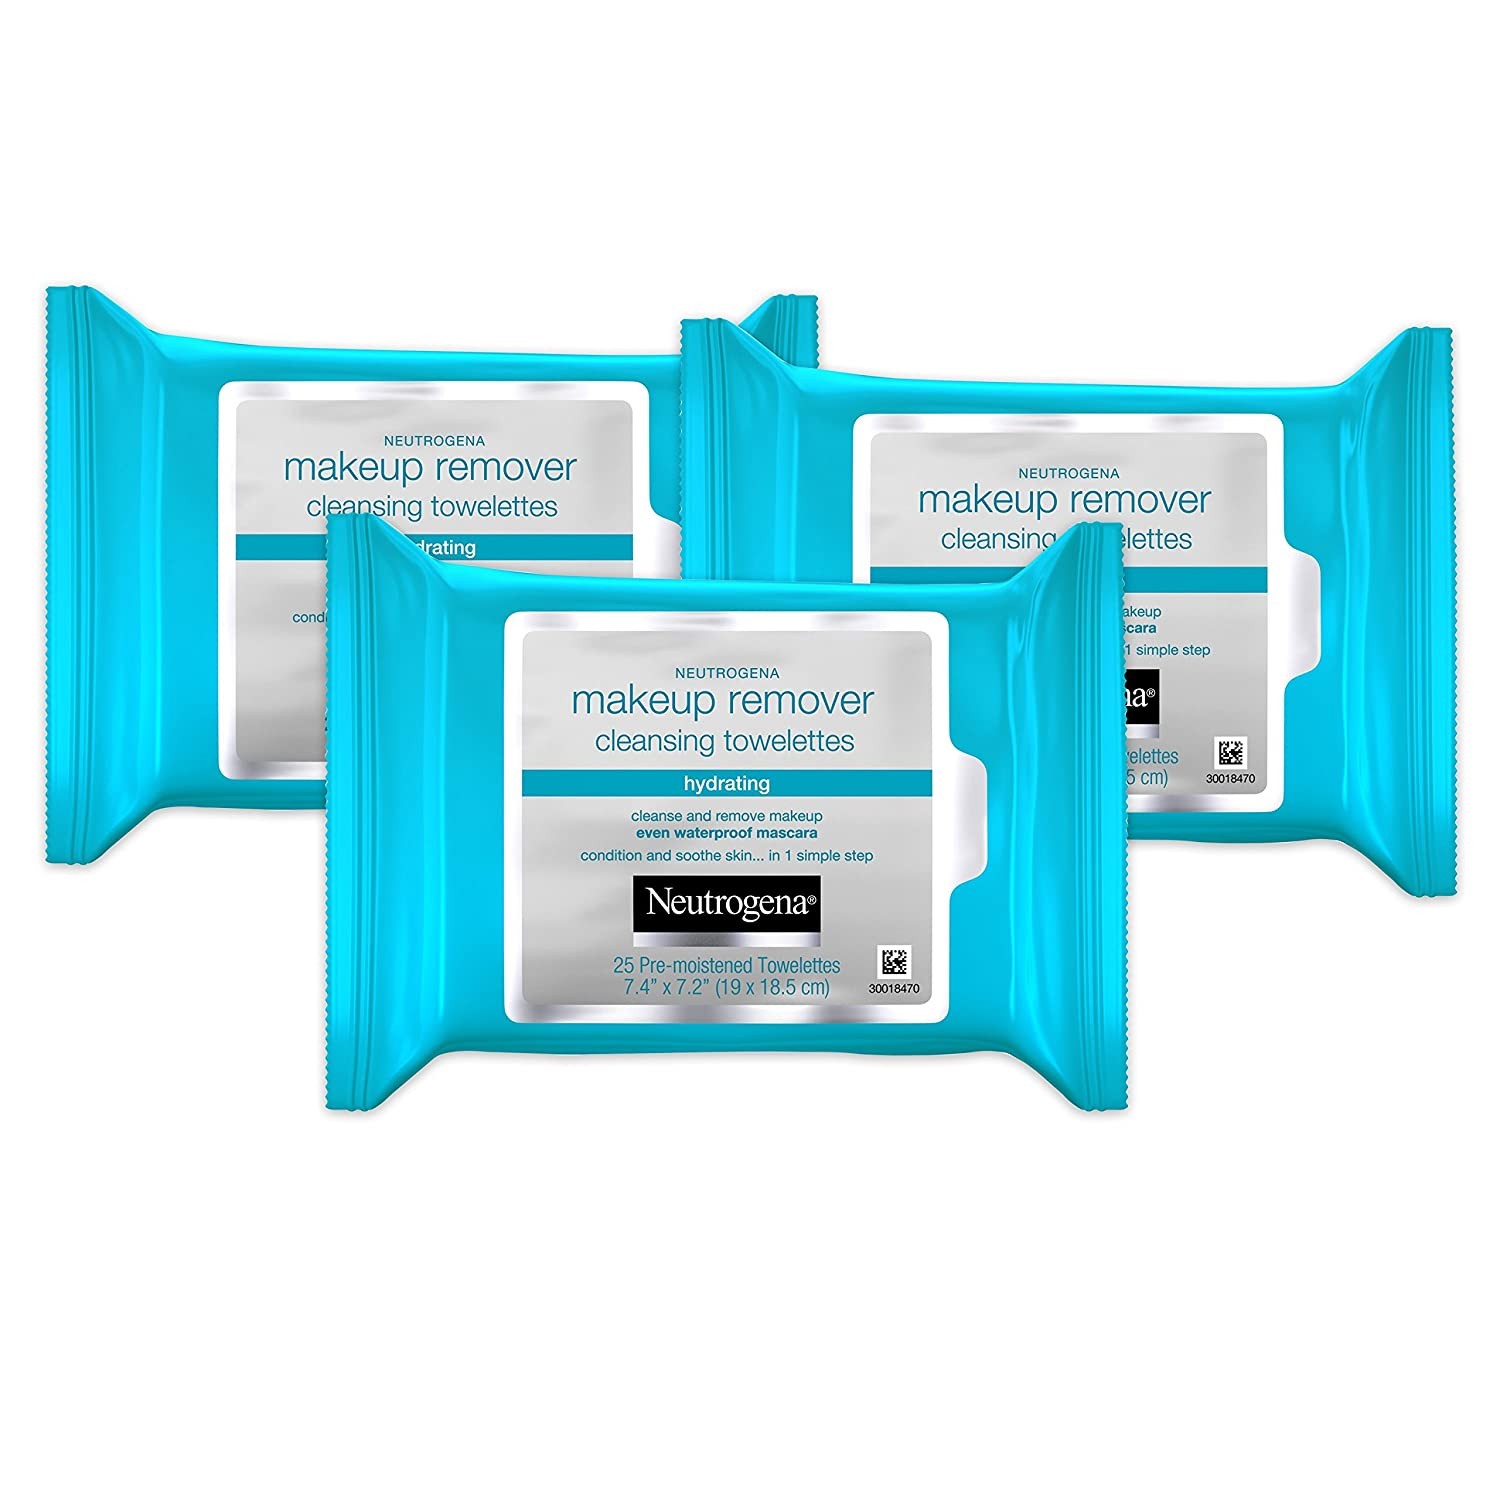 Neutrogena Hydrating Makeup Remover Facial Cleansing Wipes, Value Pack